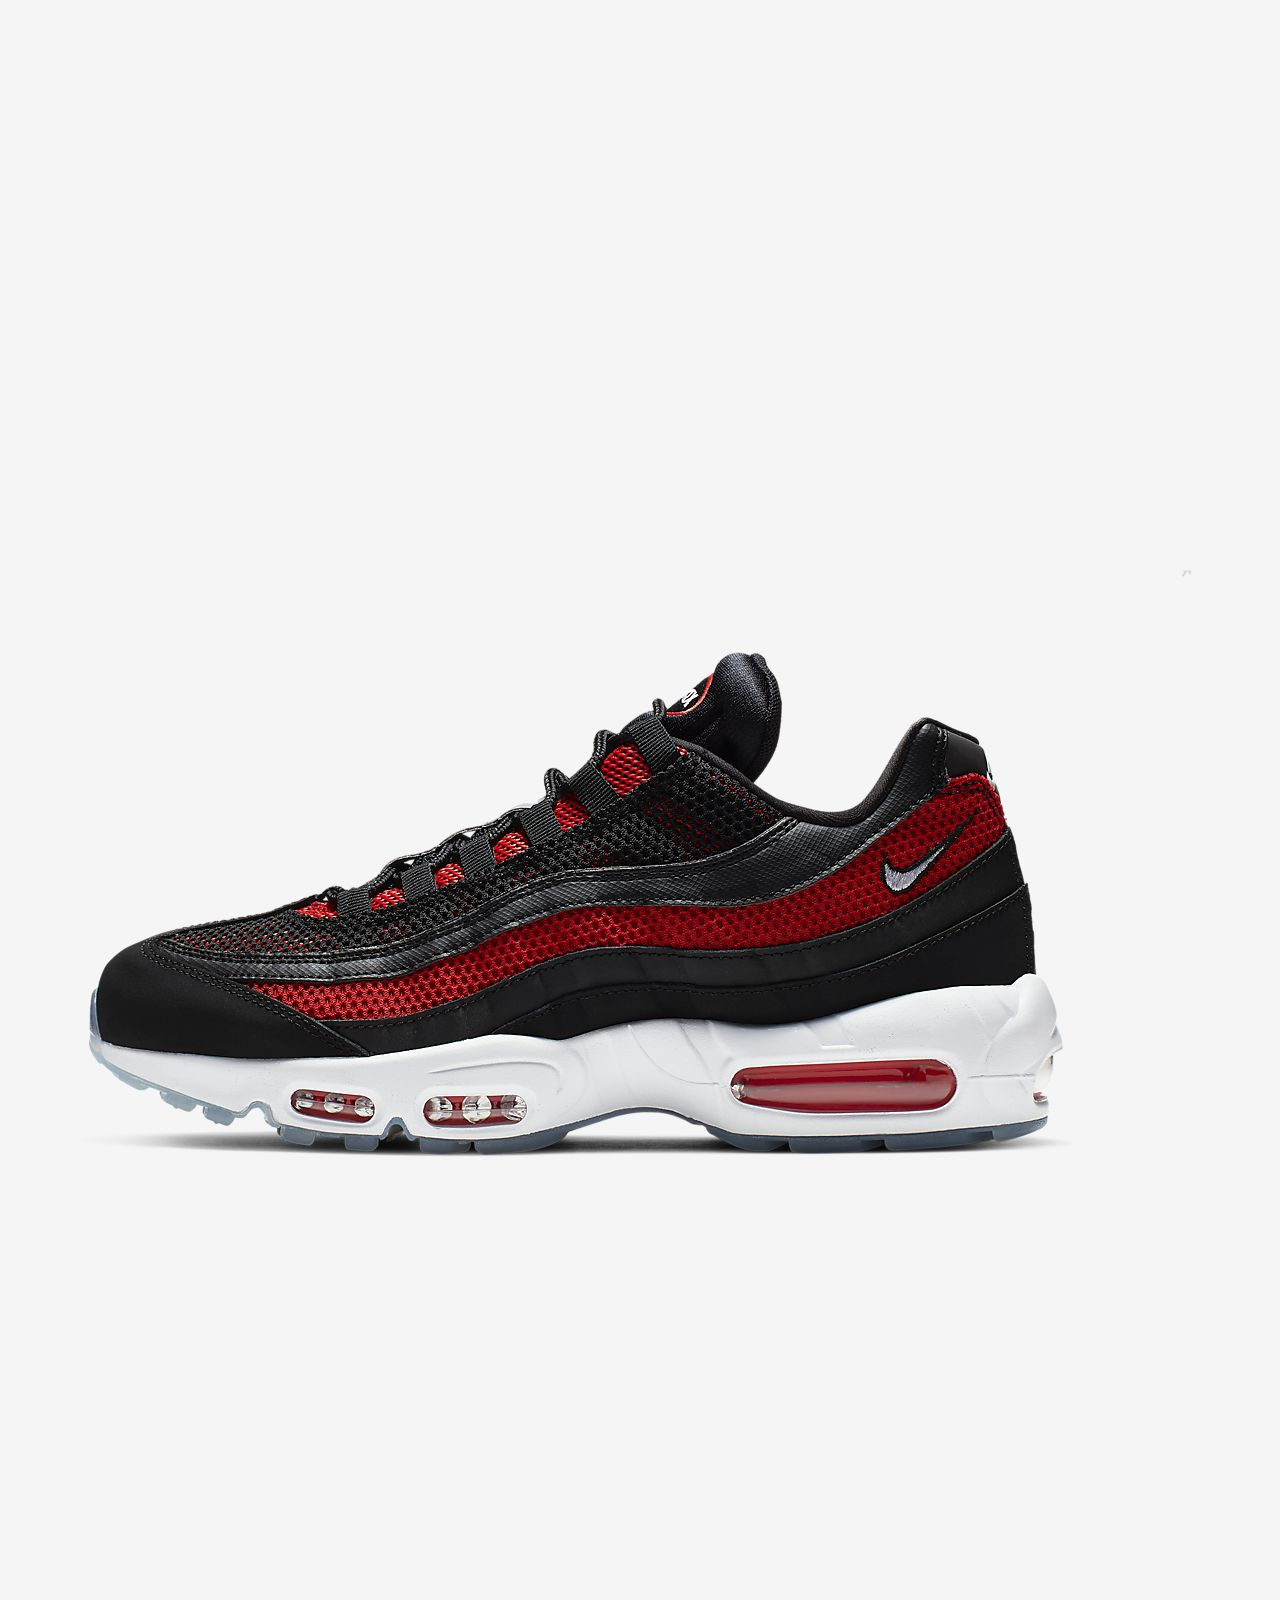 wholesale dealer 0aed4 277e3 ... Chaussure Nike Air Max 95 Essential pour Homme